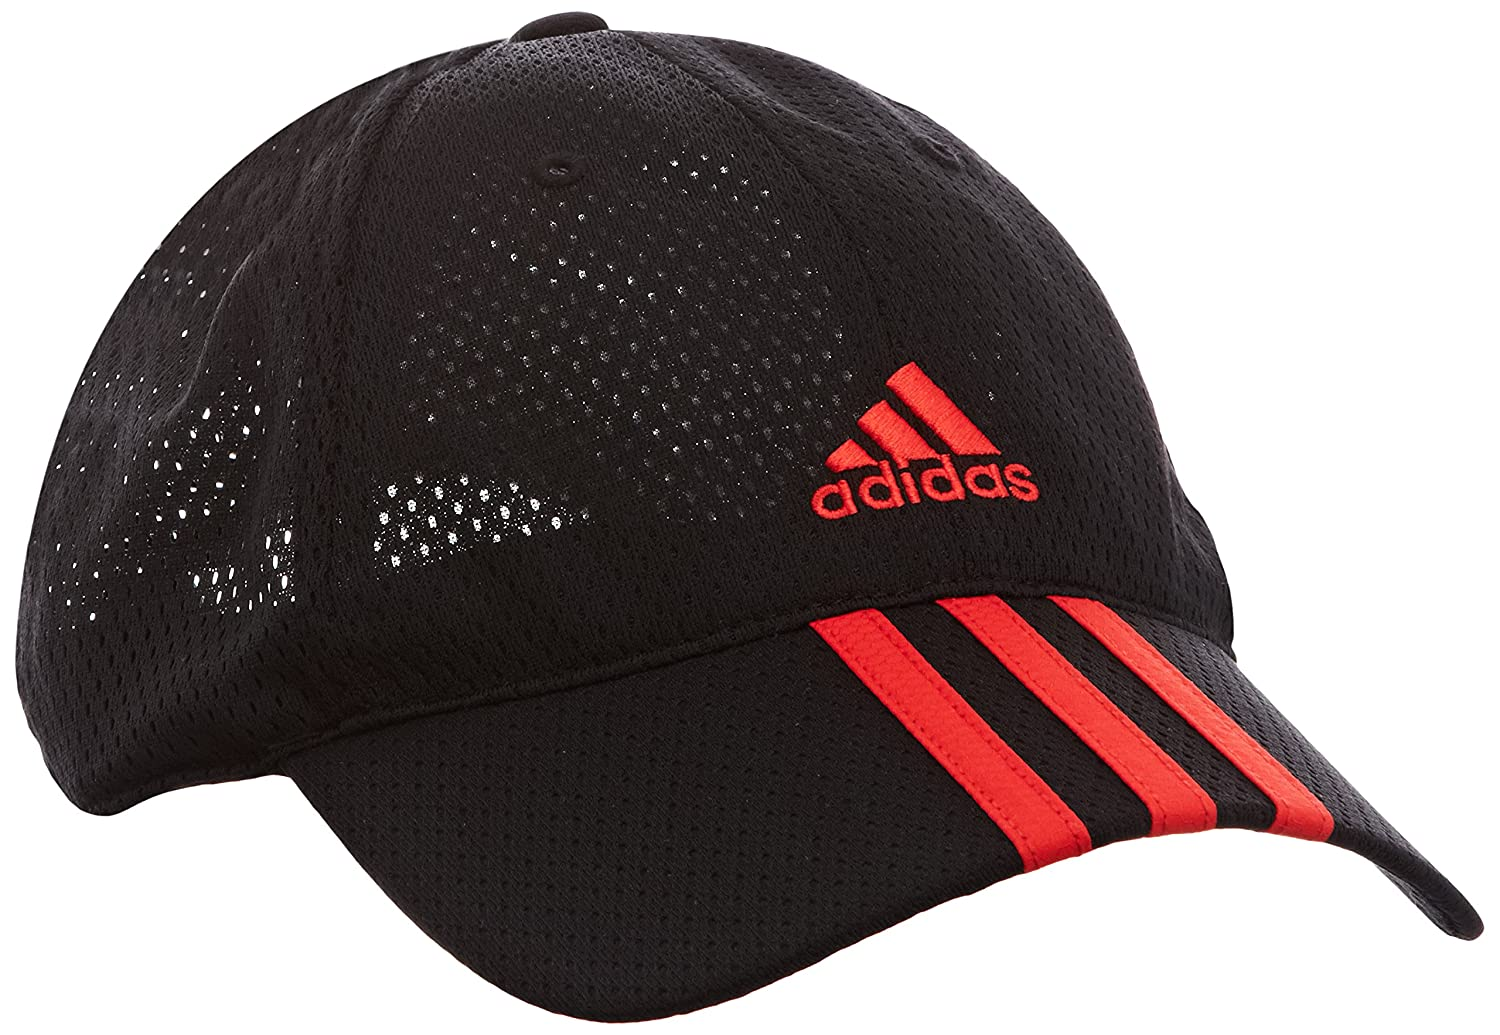 9f4f1542616 adidas Climacool Children s Cap with 3 Stripes and Mesh Black Black Hi-Res  Red Size One Size  Amazon.co.uk  Sports   Outdoors